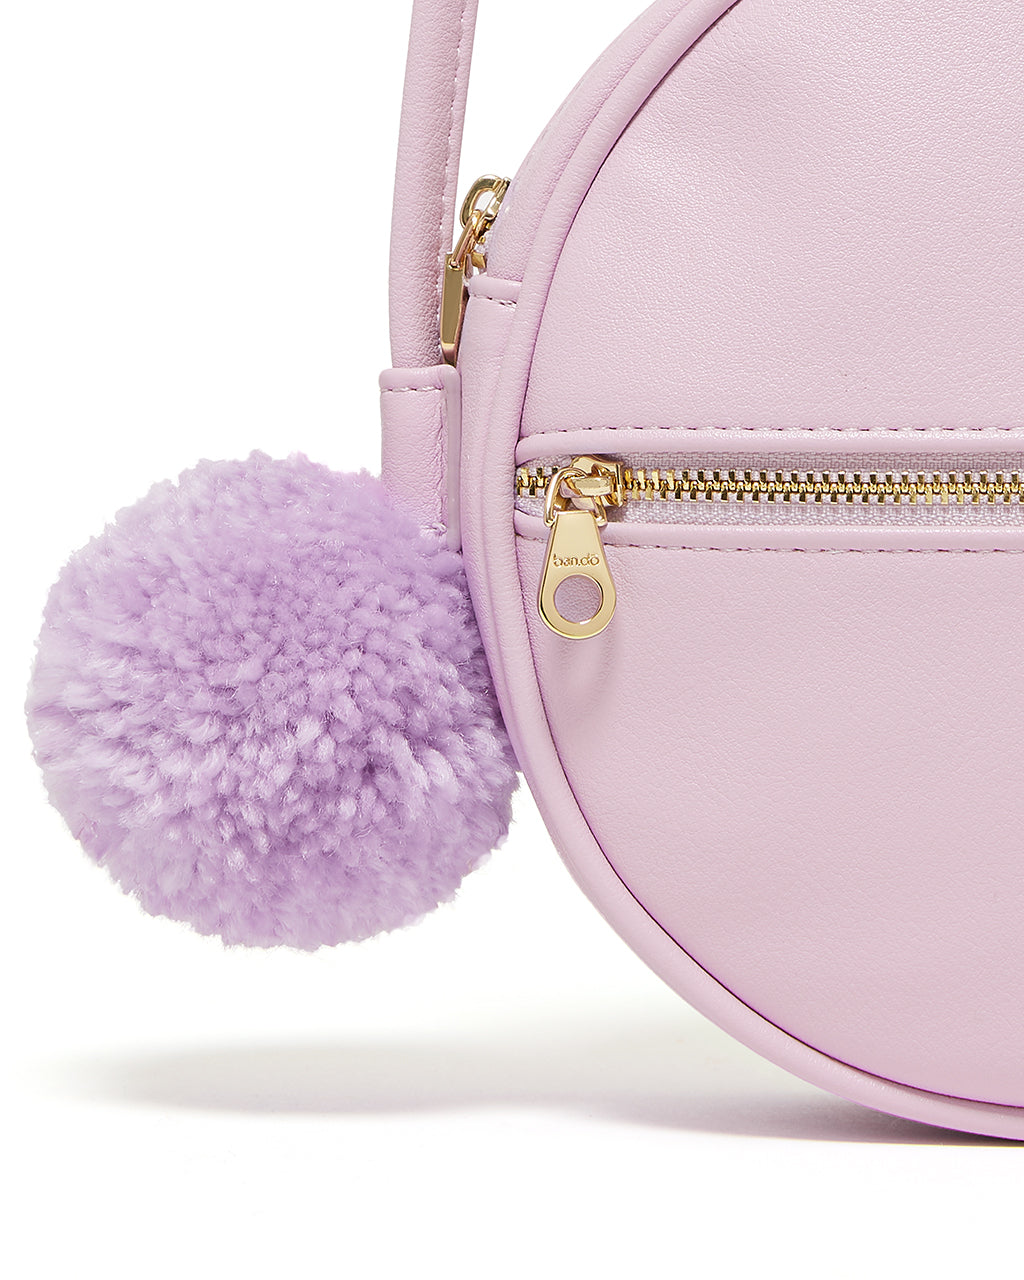 Features a detachable handmade synthetic wool pom pom.